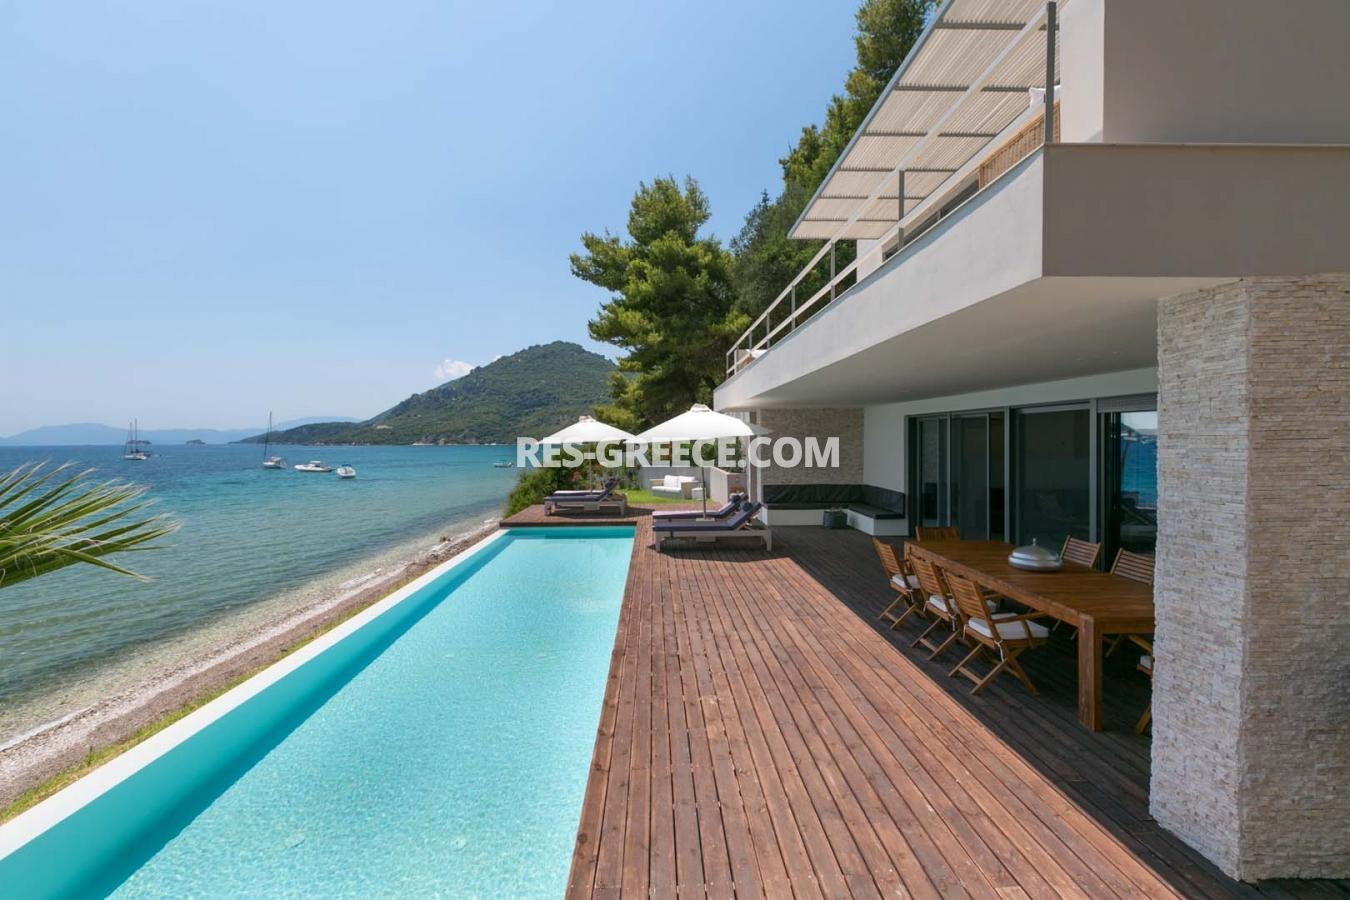 Kastor, Epir, Greece - off-plan villa project first line to the sea - Photo 12